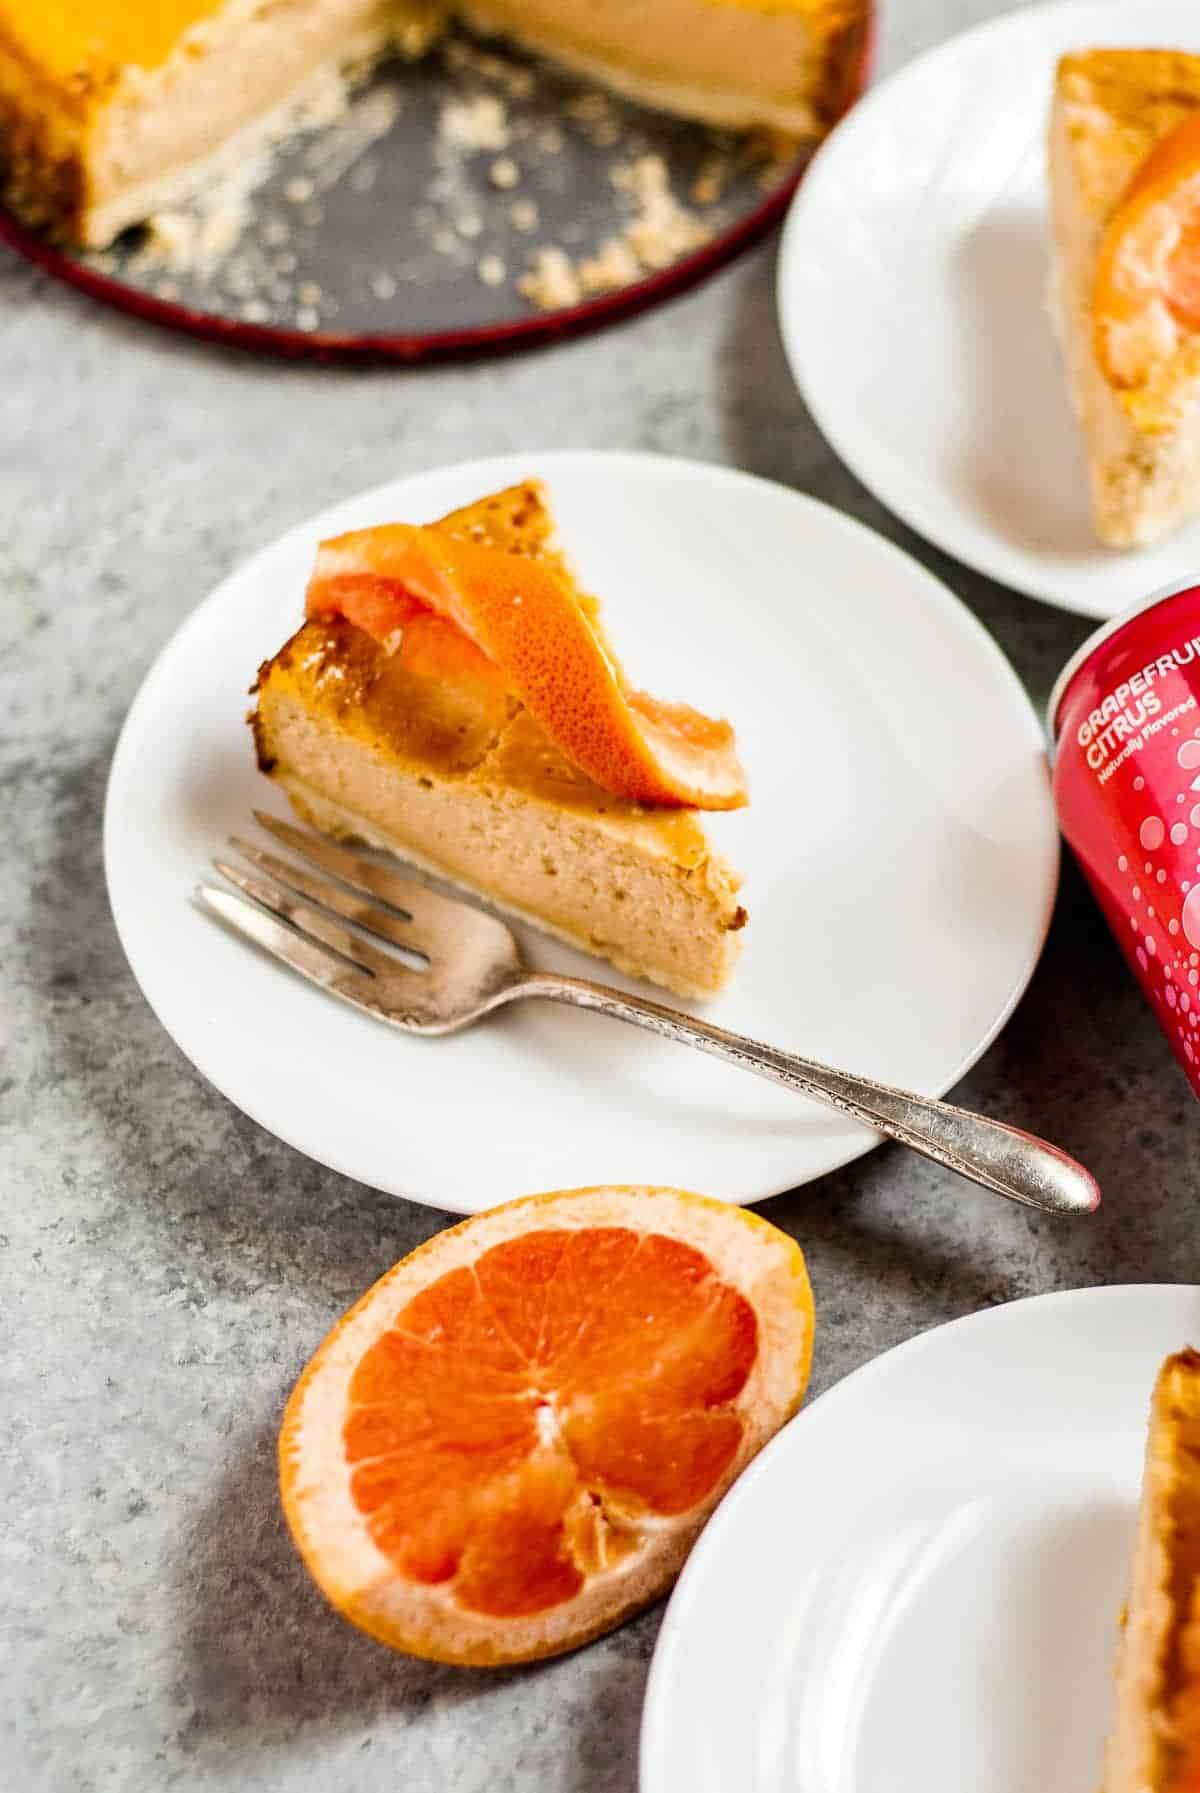 slice of cheesecake with grapefruit